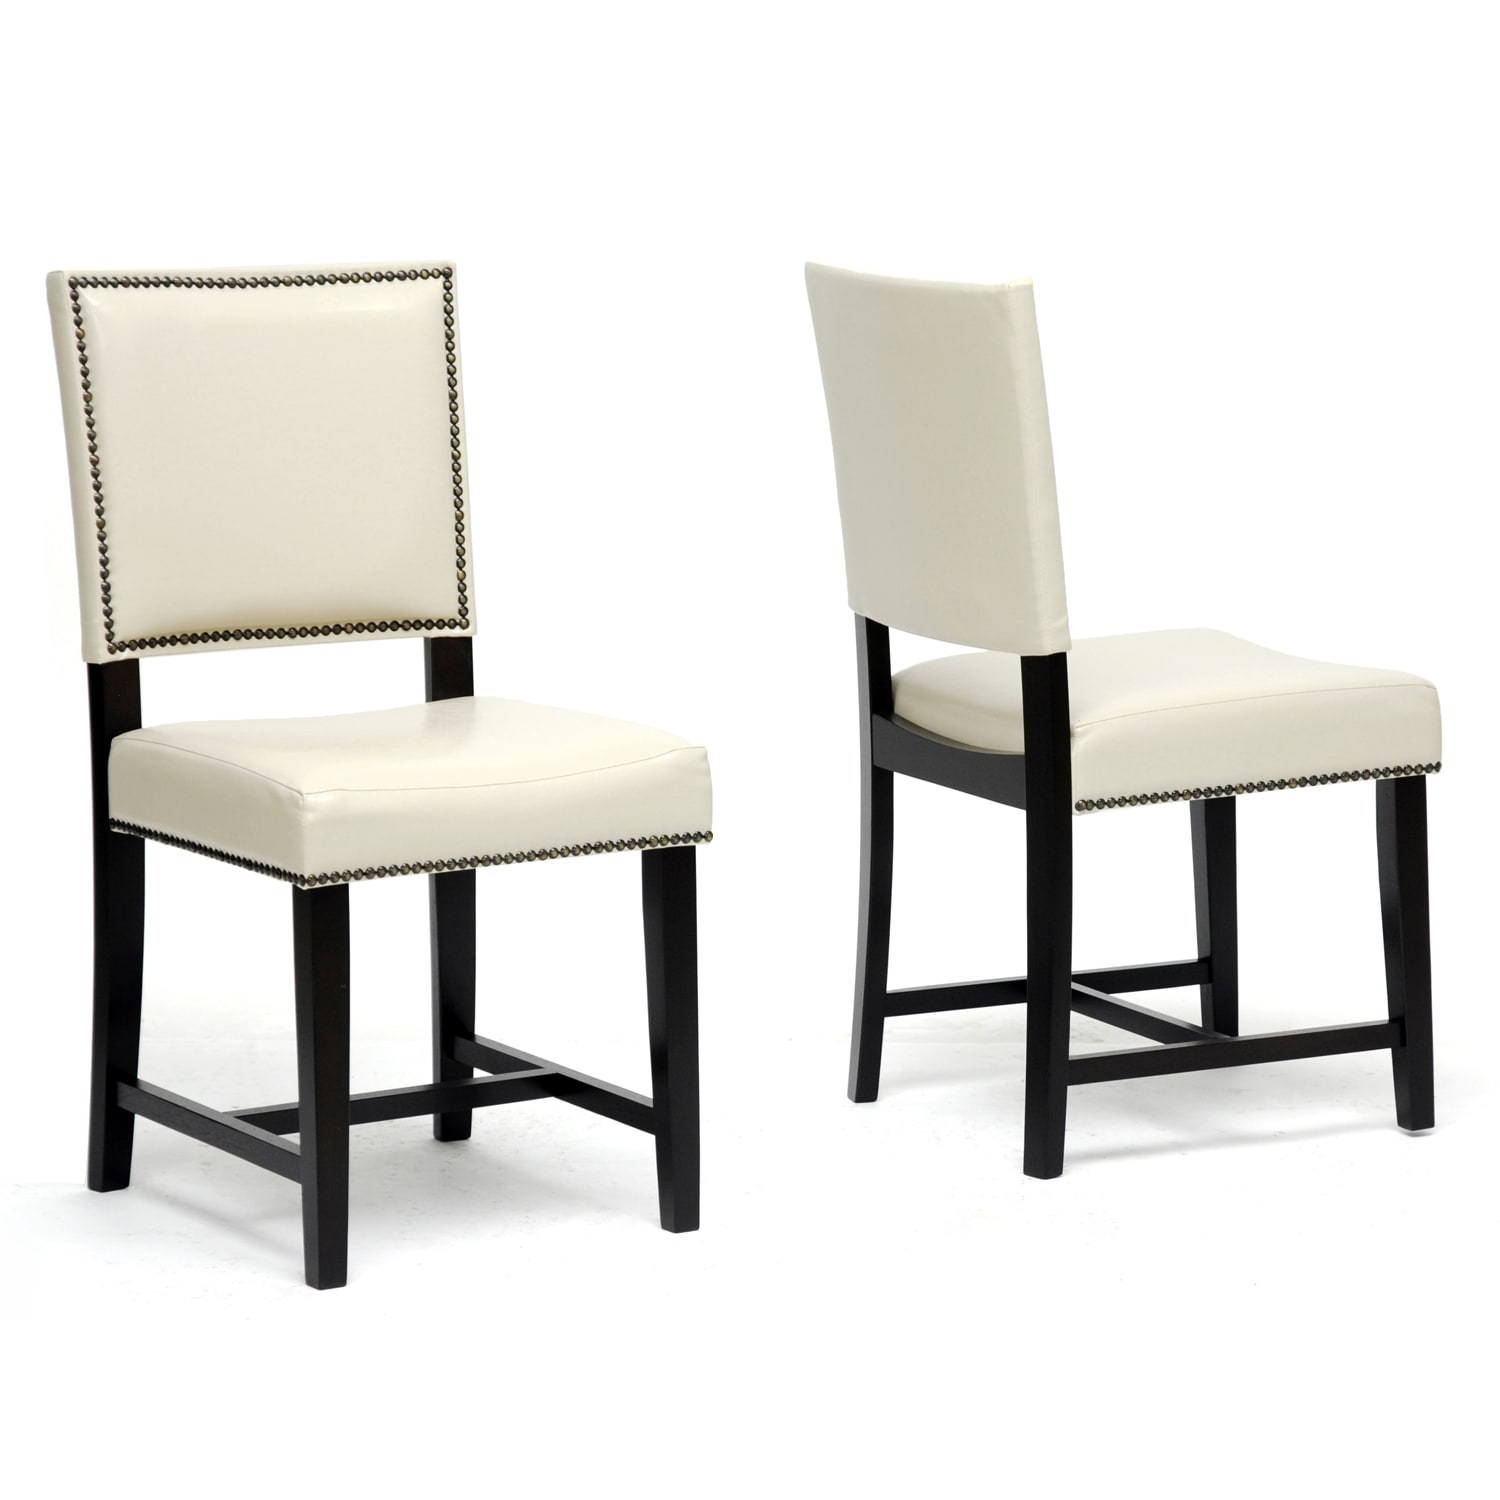 Baxton studio dining chairs overstock shopping the for Modern dining furniture